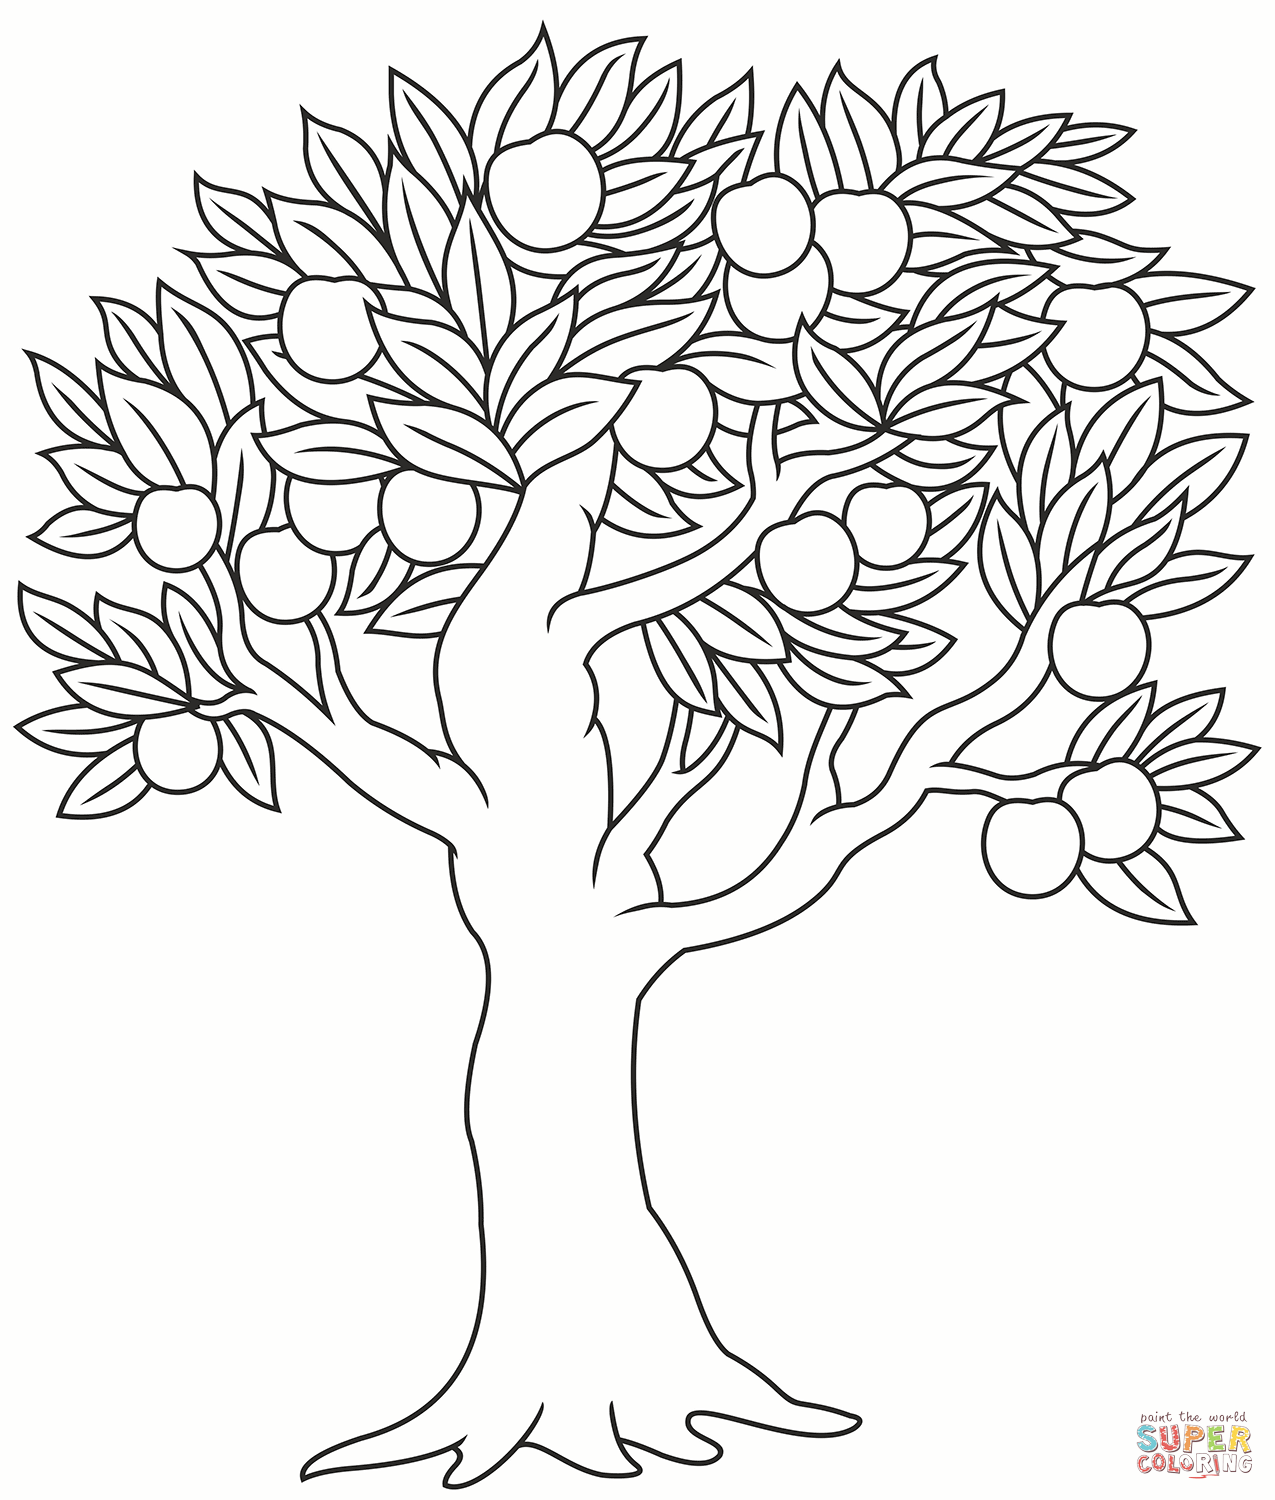 apple tree pictures to color apple tree coloring page free printable coloring pages apple tree pictures to color